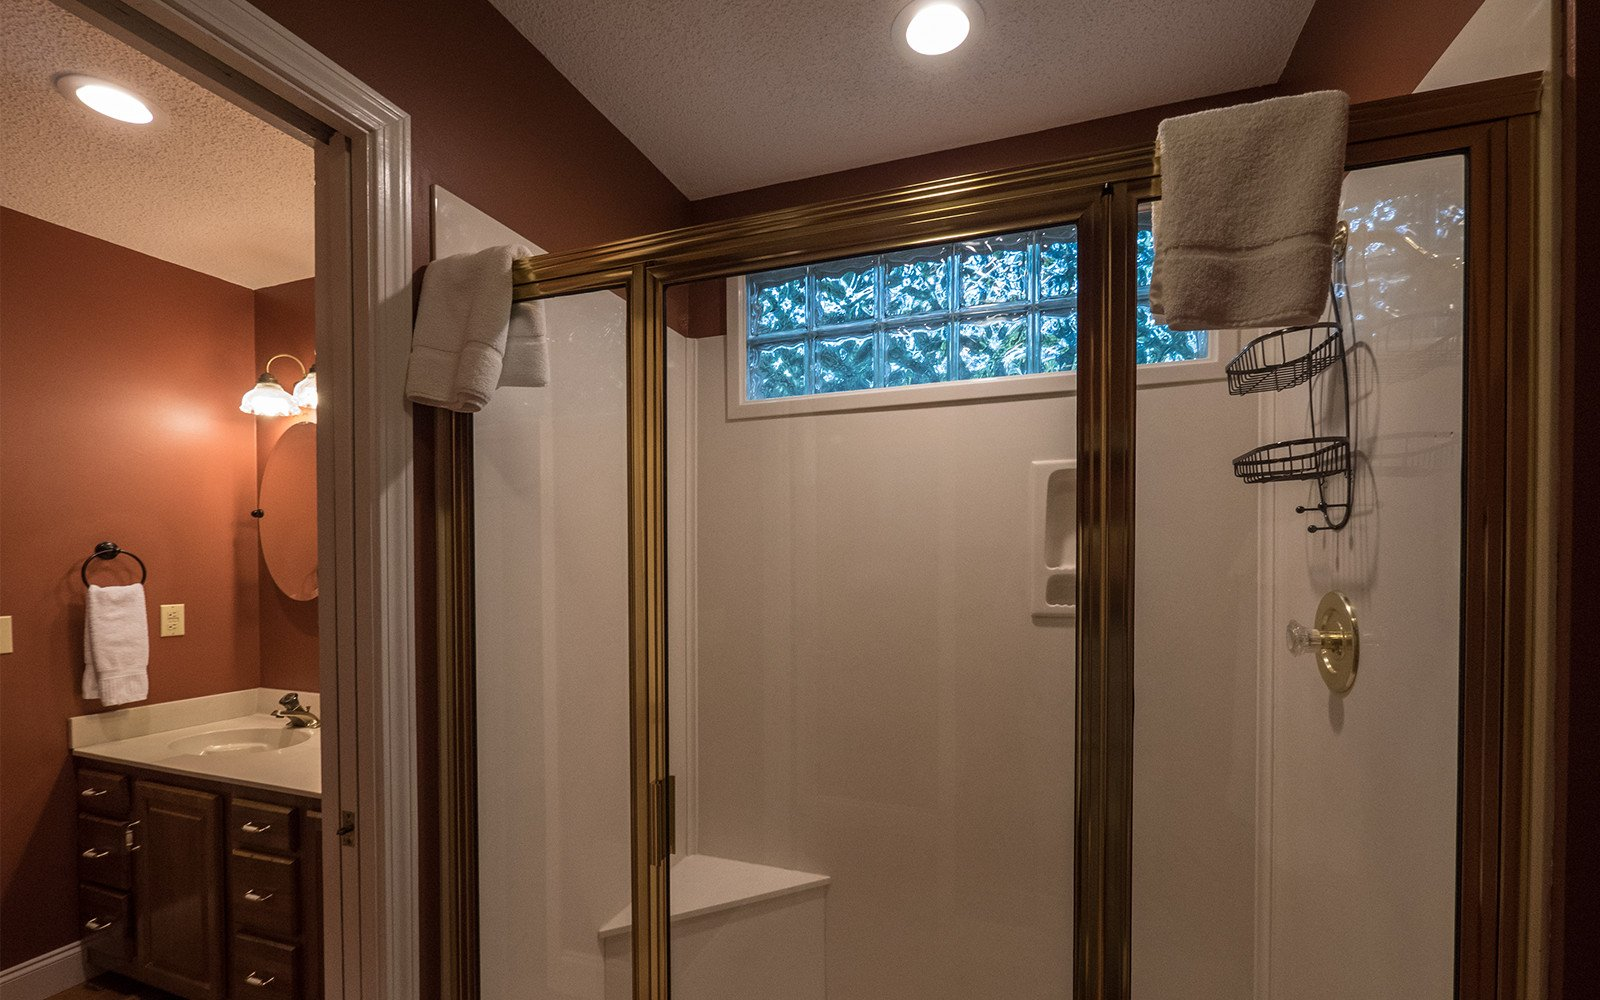 Hilt-St-house-master-bathroom